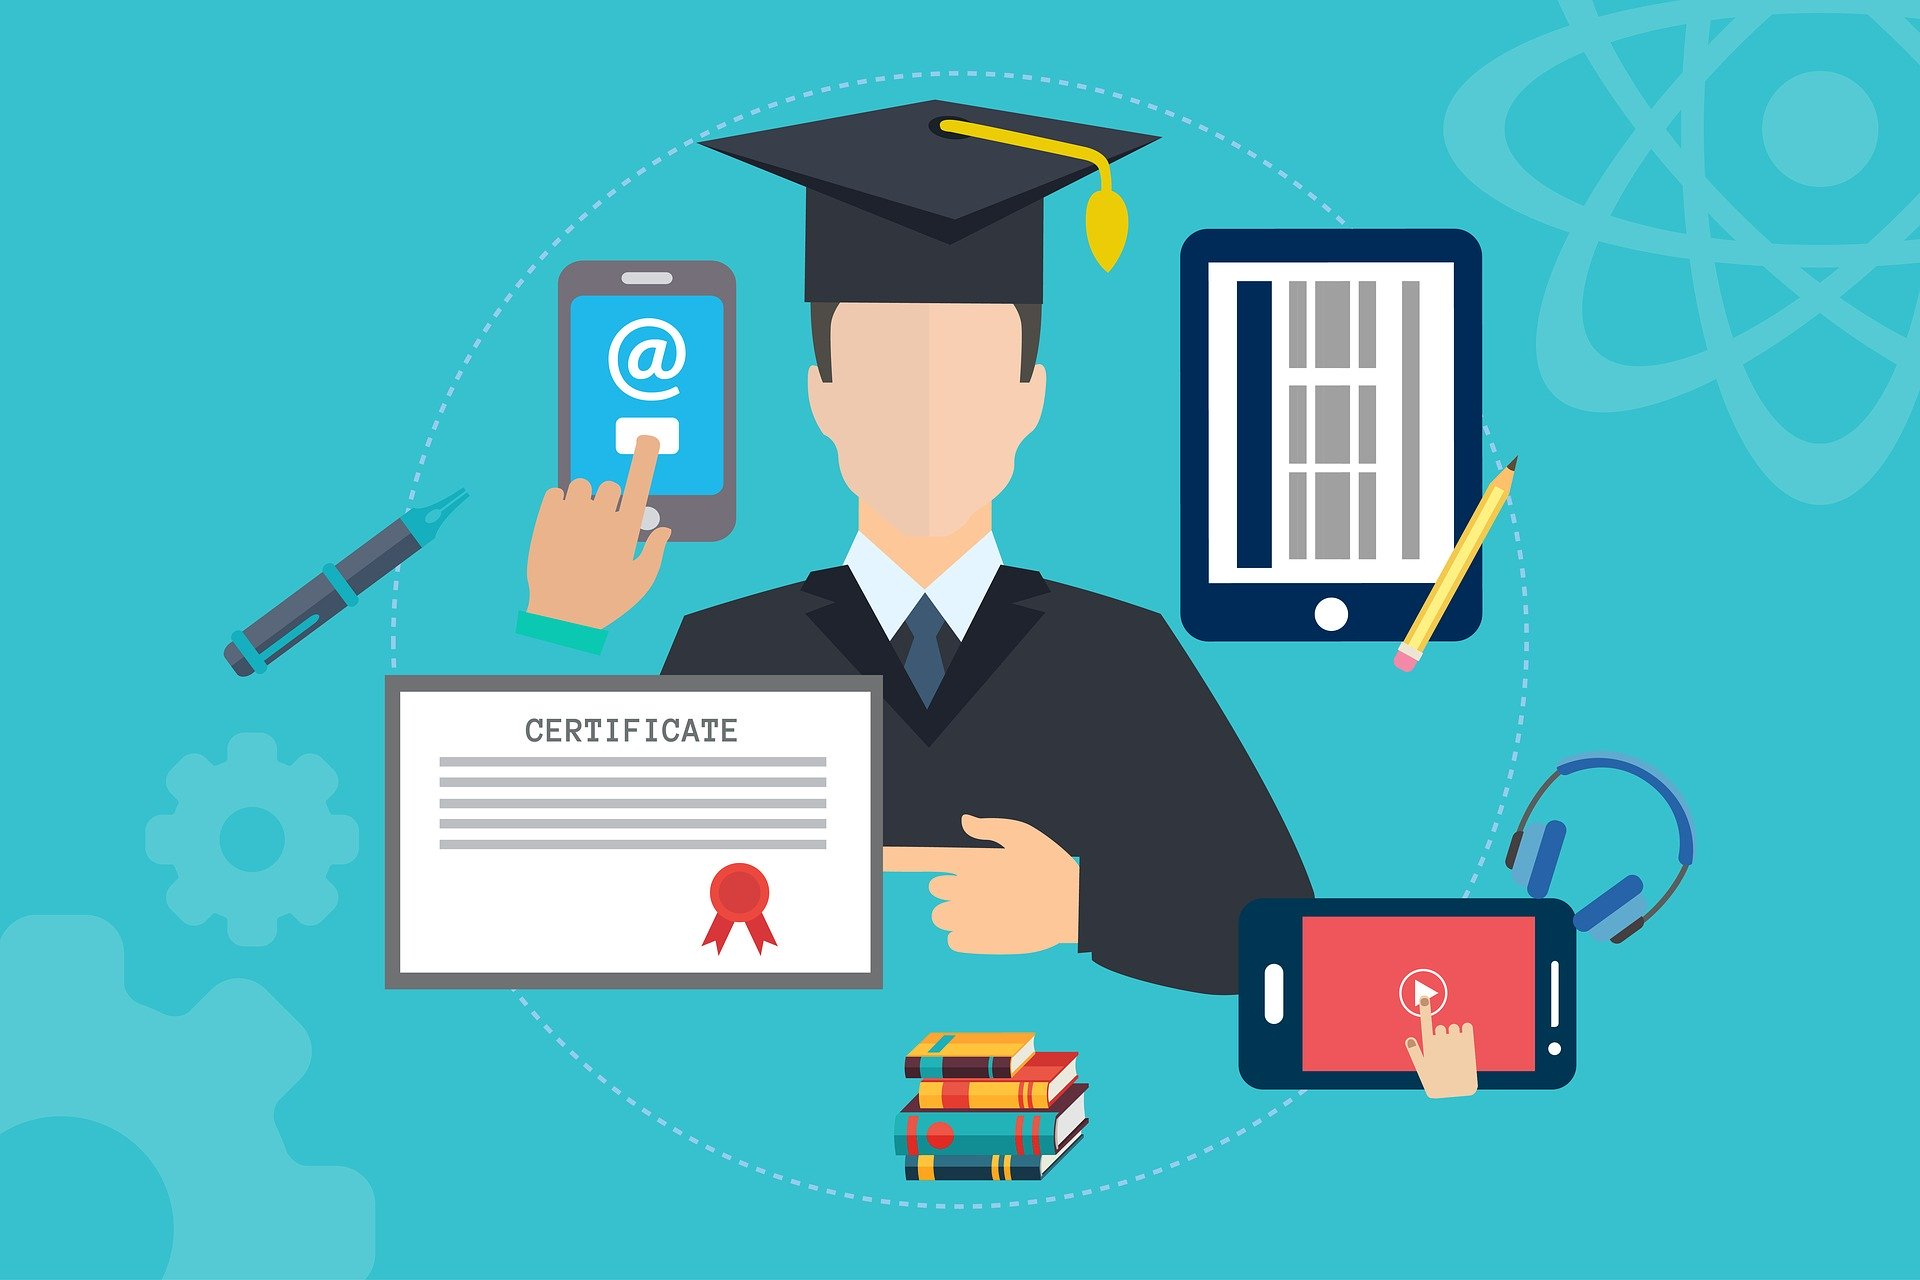 Top 5 Digital Transformation Trends in Education for 2020